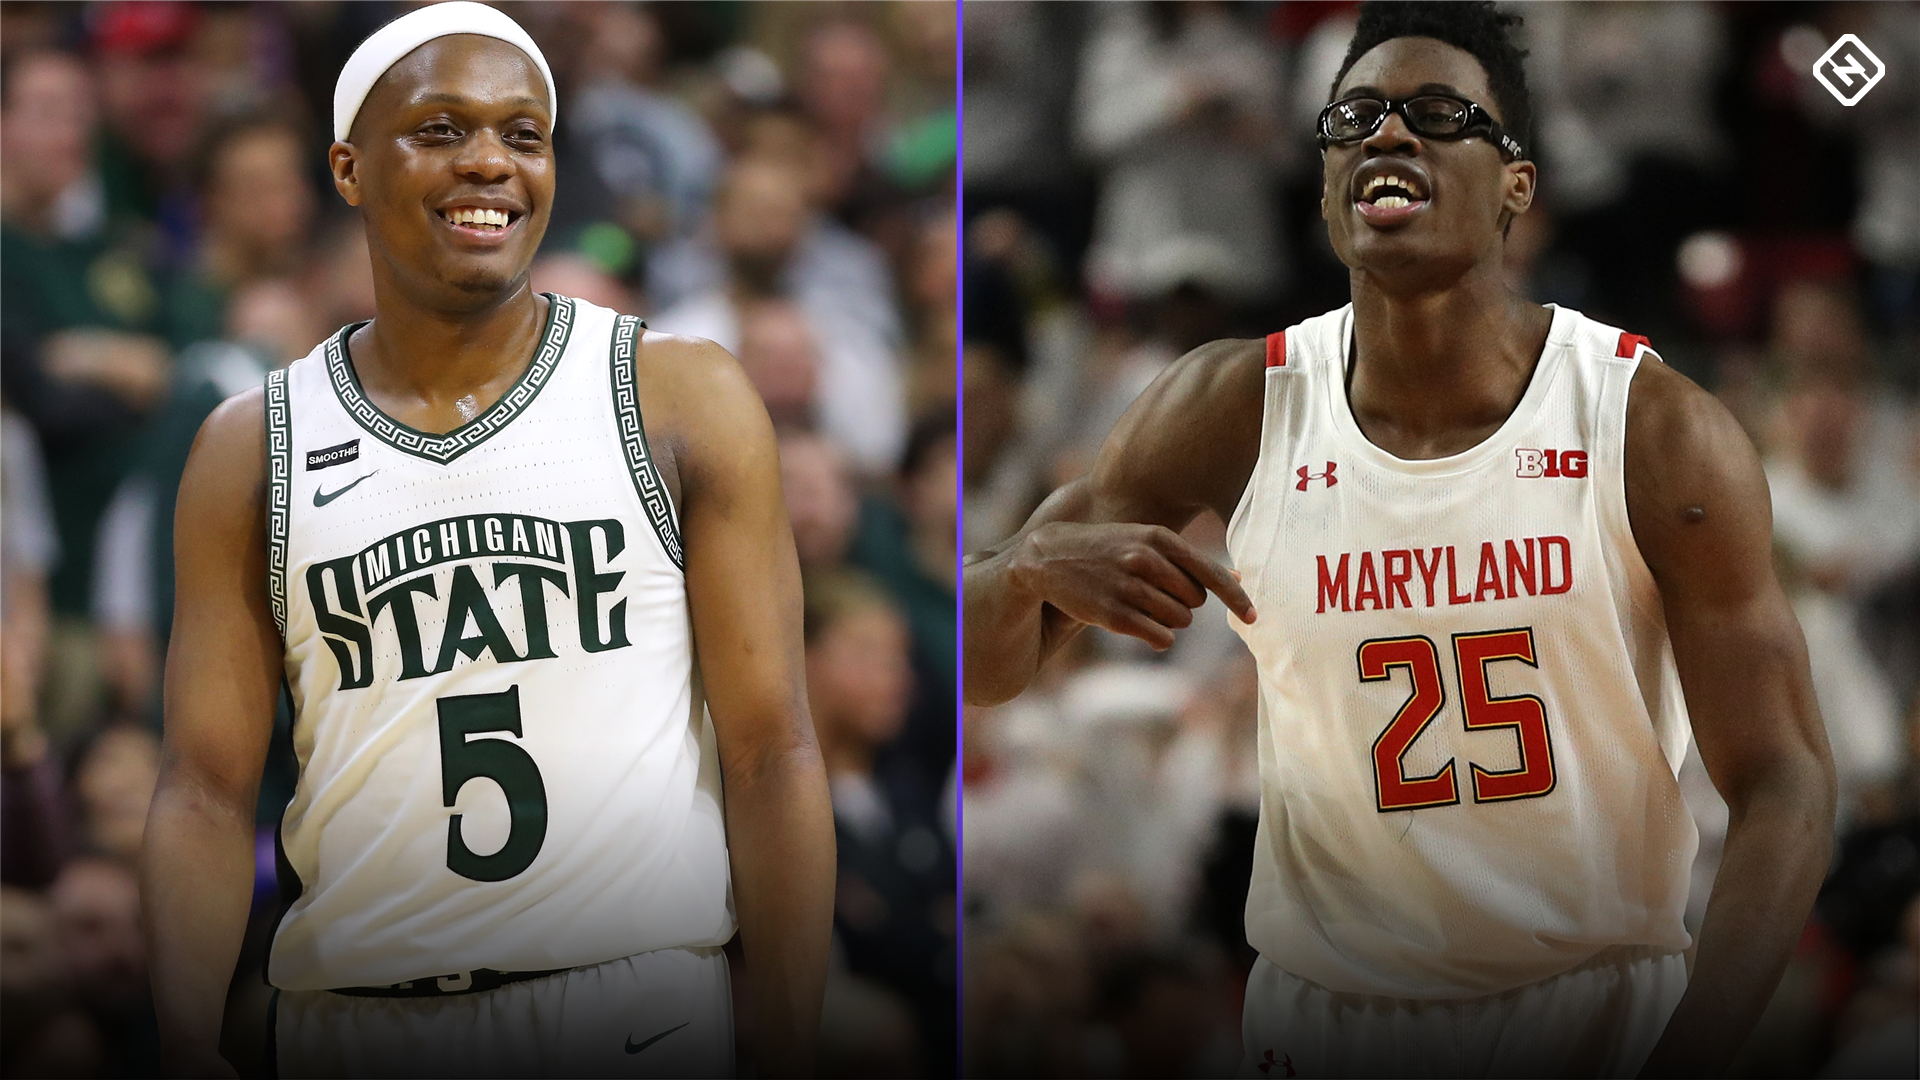 Big Ten Tournament odds 2020: Michigan State, el favorito de apuestas en el campo competitivo 13